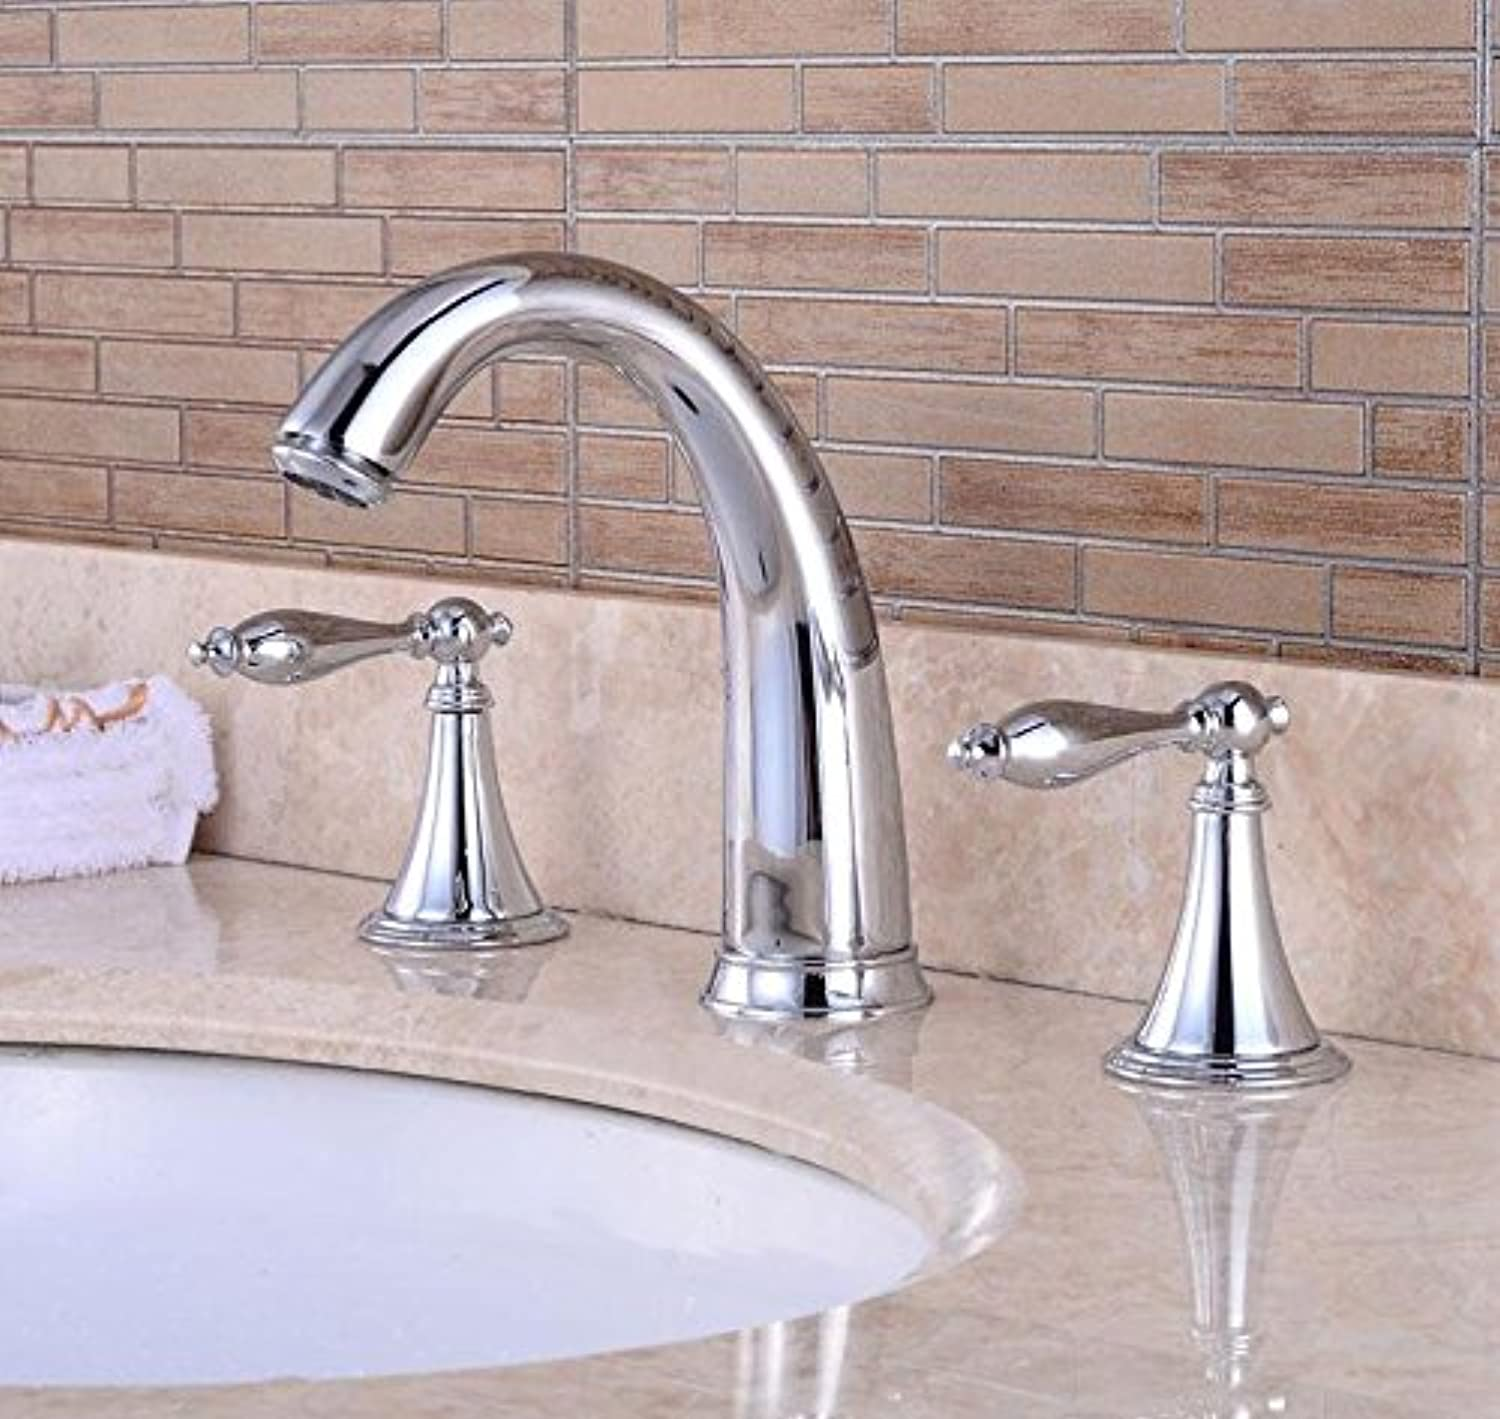 QUSLT golden Faucet Three Dark Wash Basin Faucet Open Bathroom Basin Faucet gold,Electroplating B